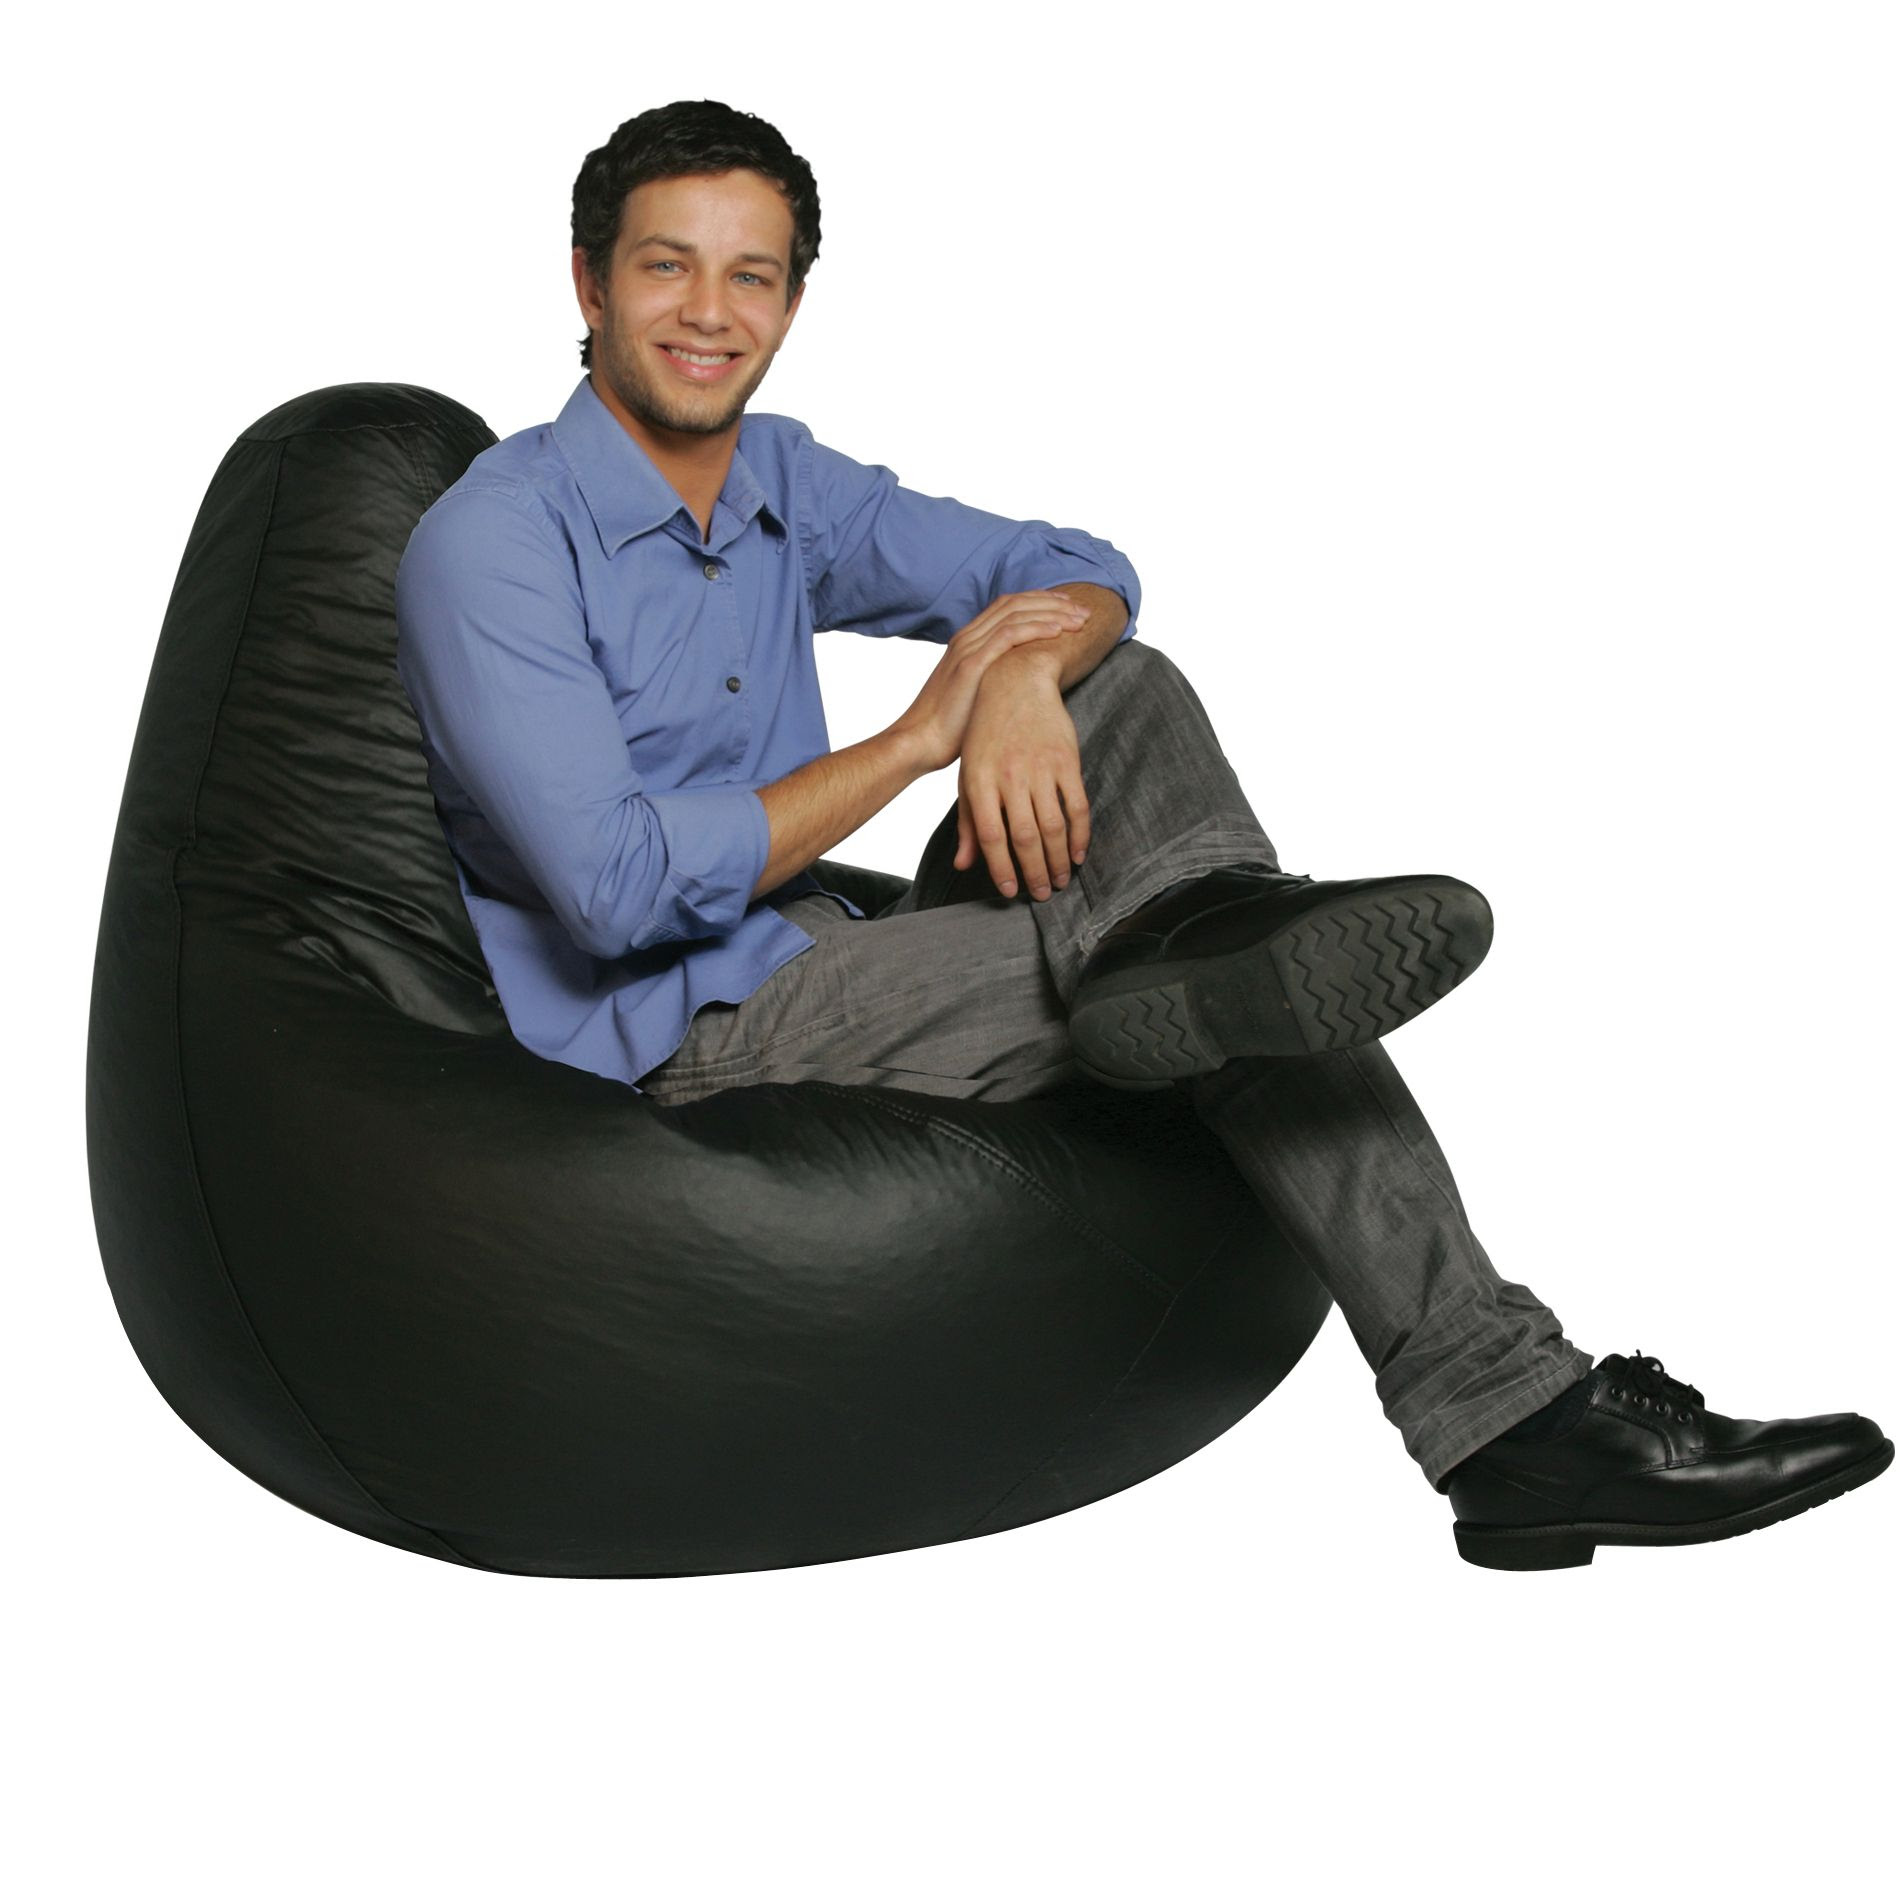 Terrific Sears Bean Bag Chair Home Design Architecture Onthecornerstone Fun Painted Chair Ideas Images Onthecornerstoneorg